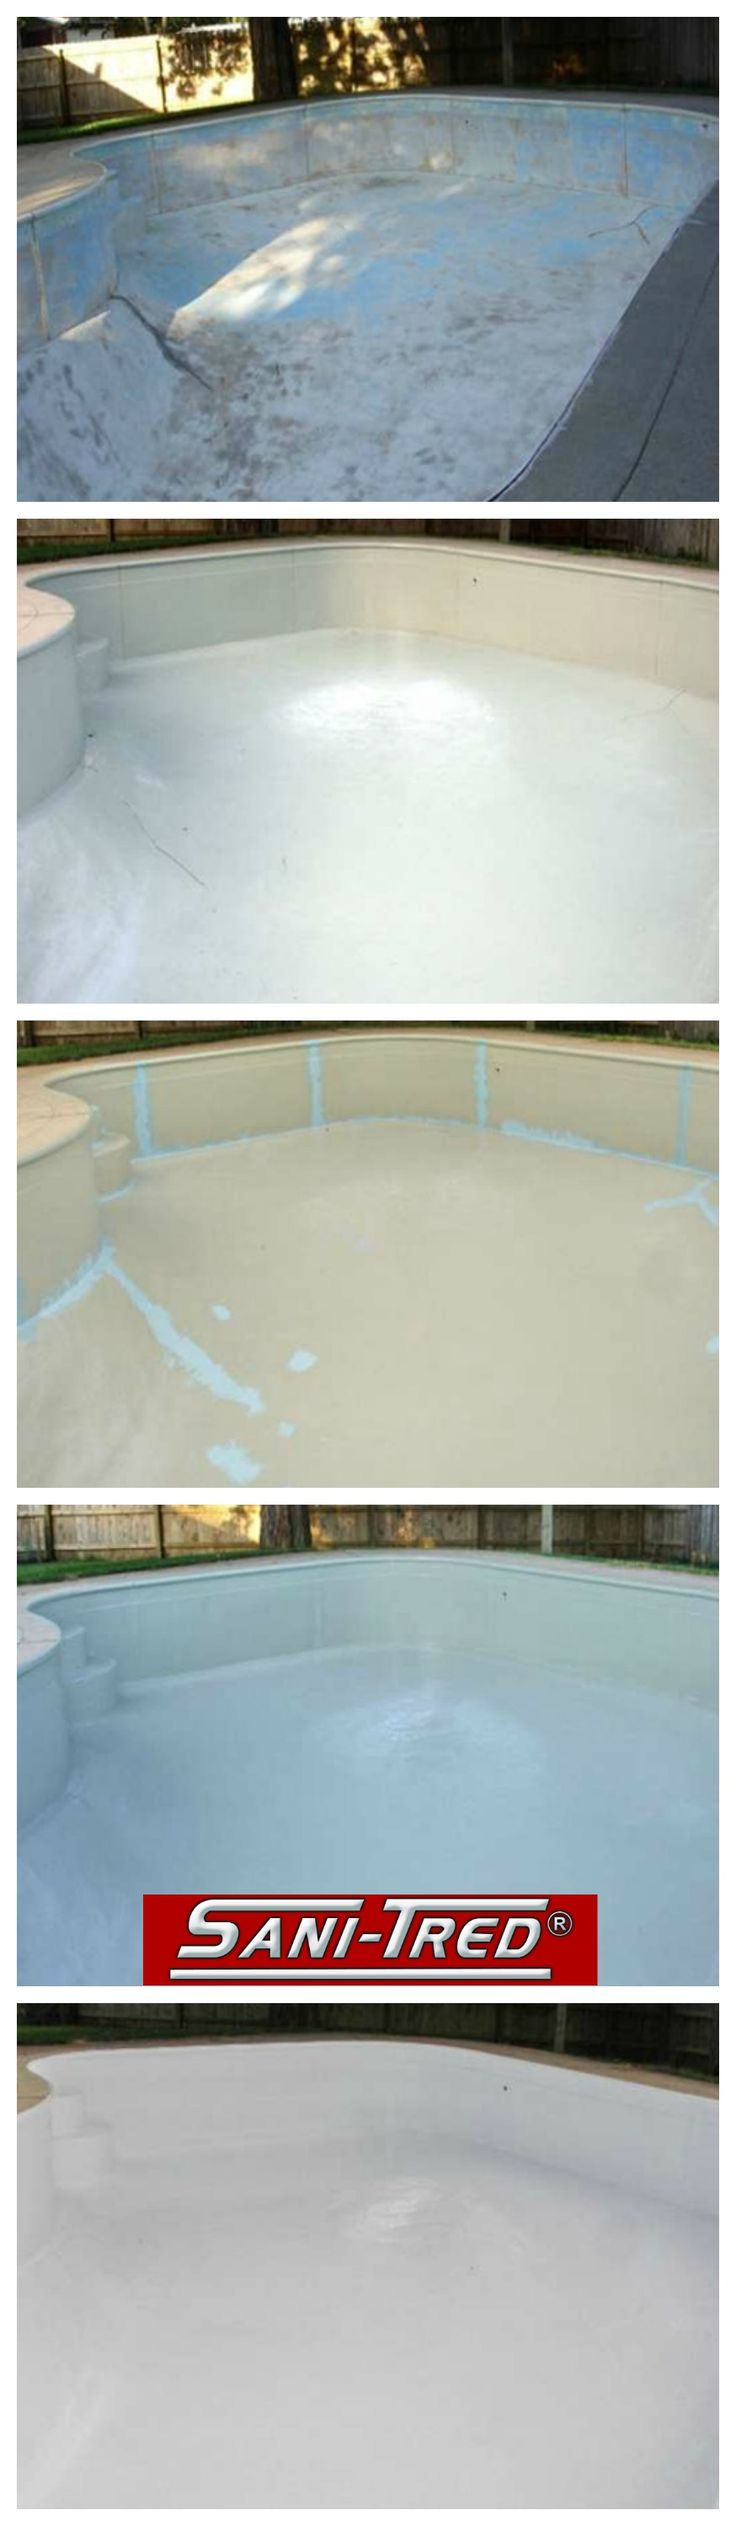 Swimming pool repair and solution with the Sani-Tred System!